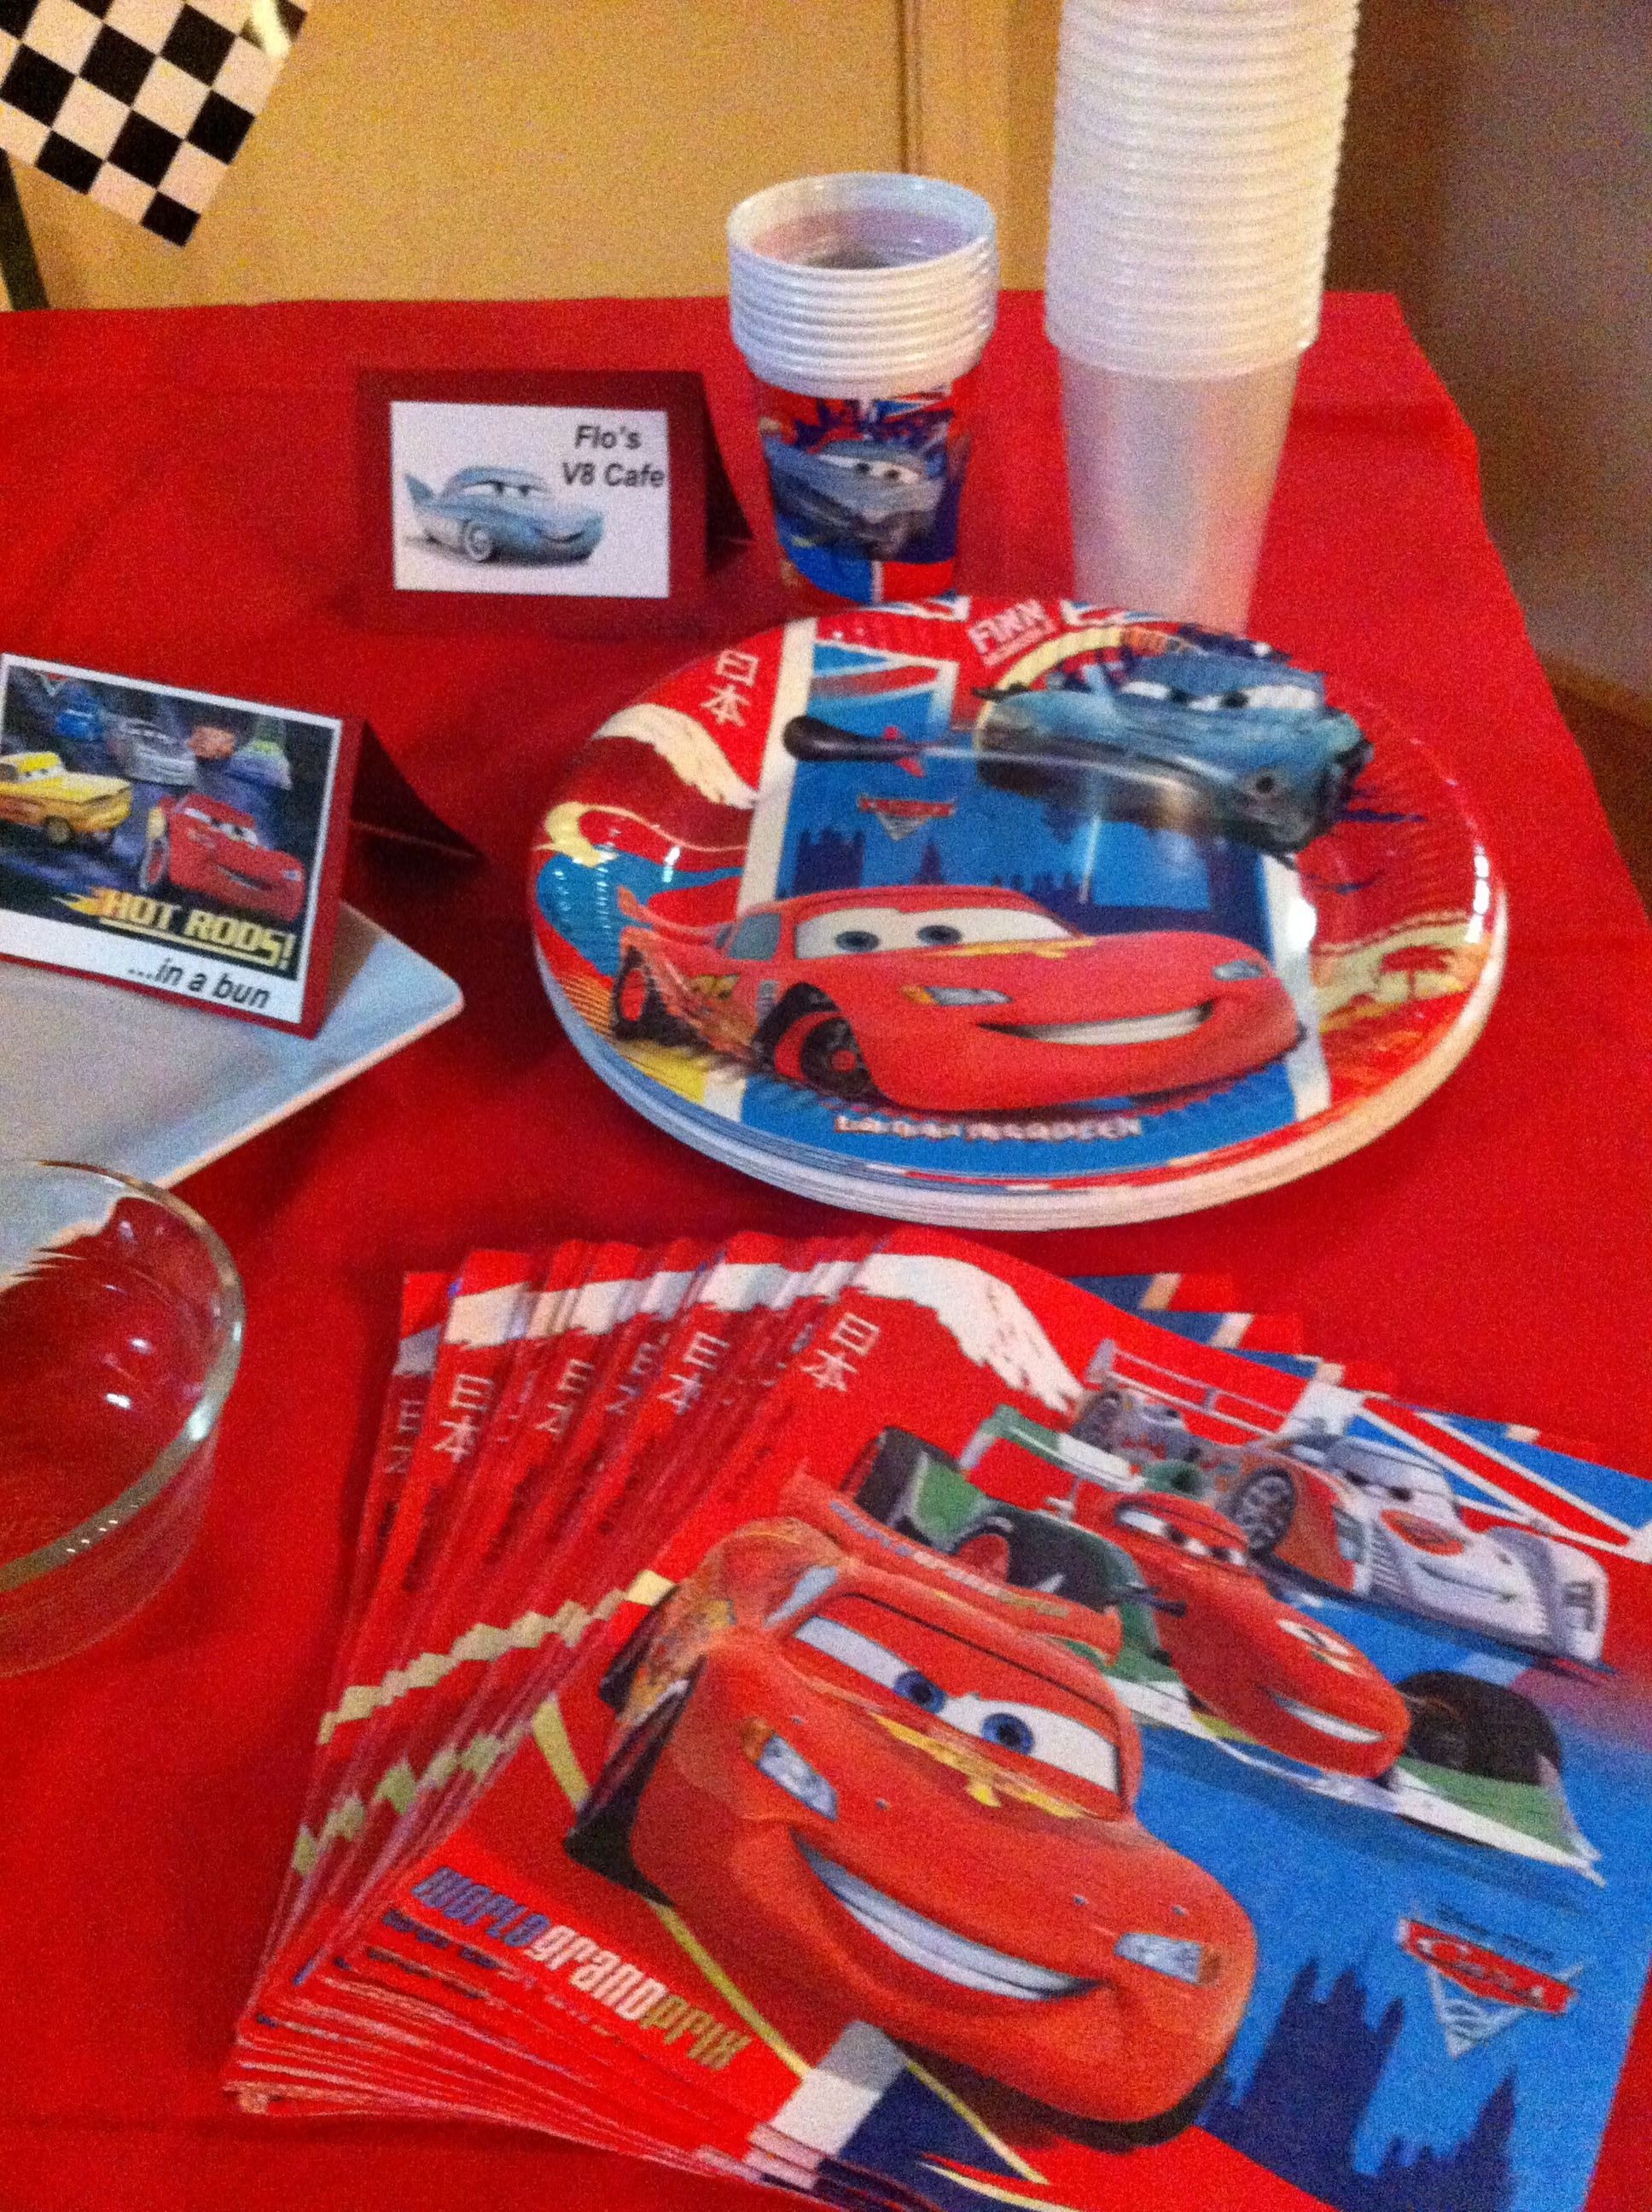 Best ideas about Birthday Party Supplies Online . Save or Pin Disney Cars Birthday Party on a Bud Kidz Activities Now.